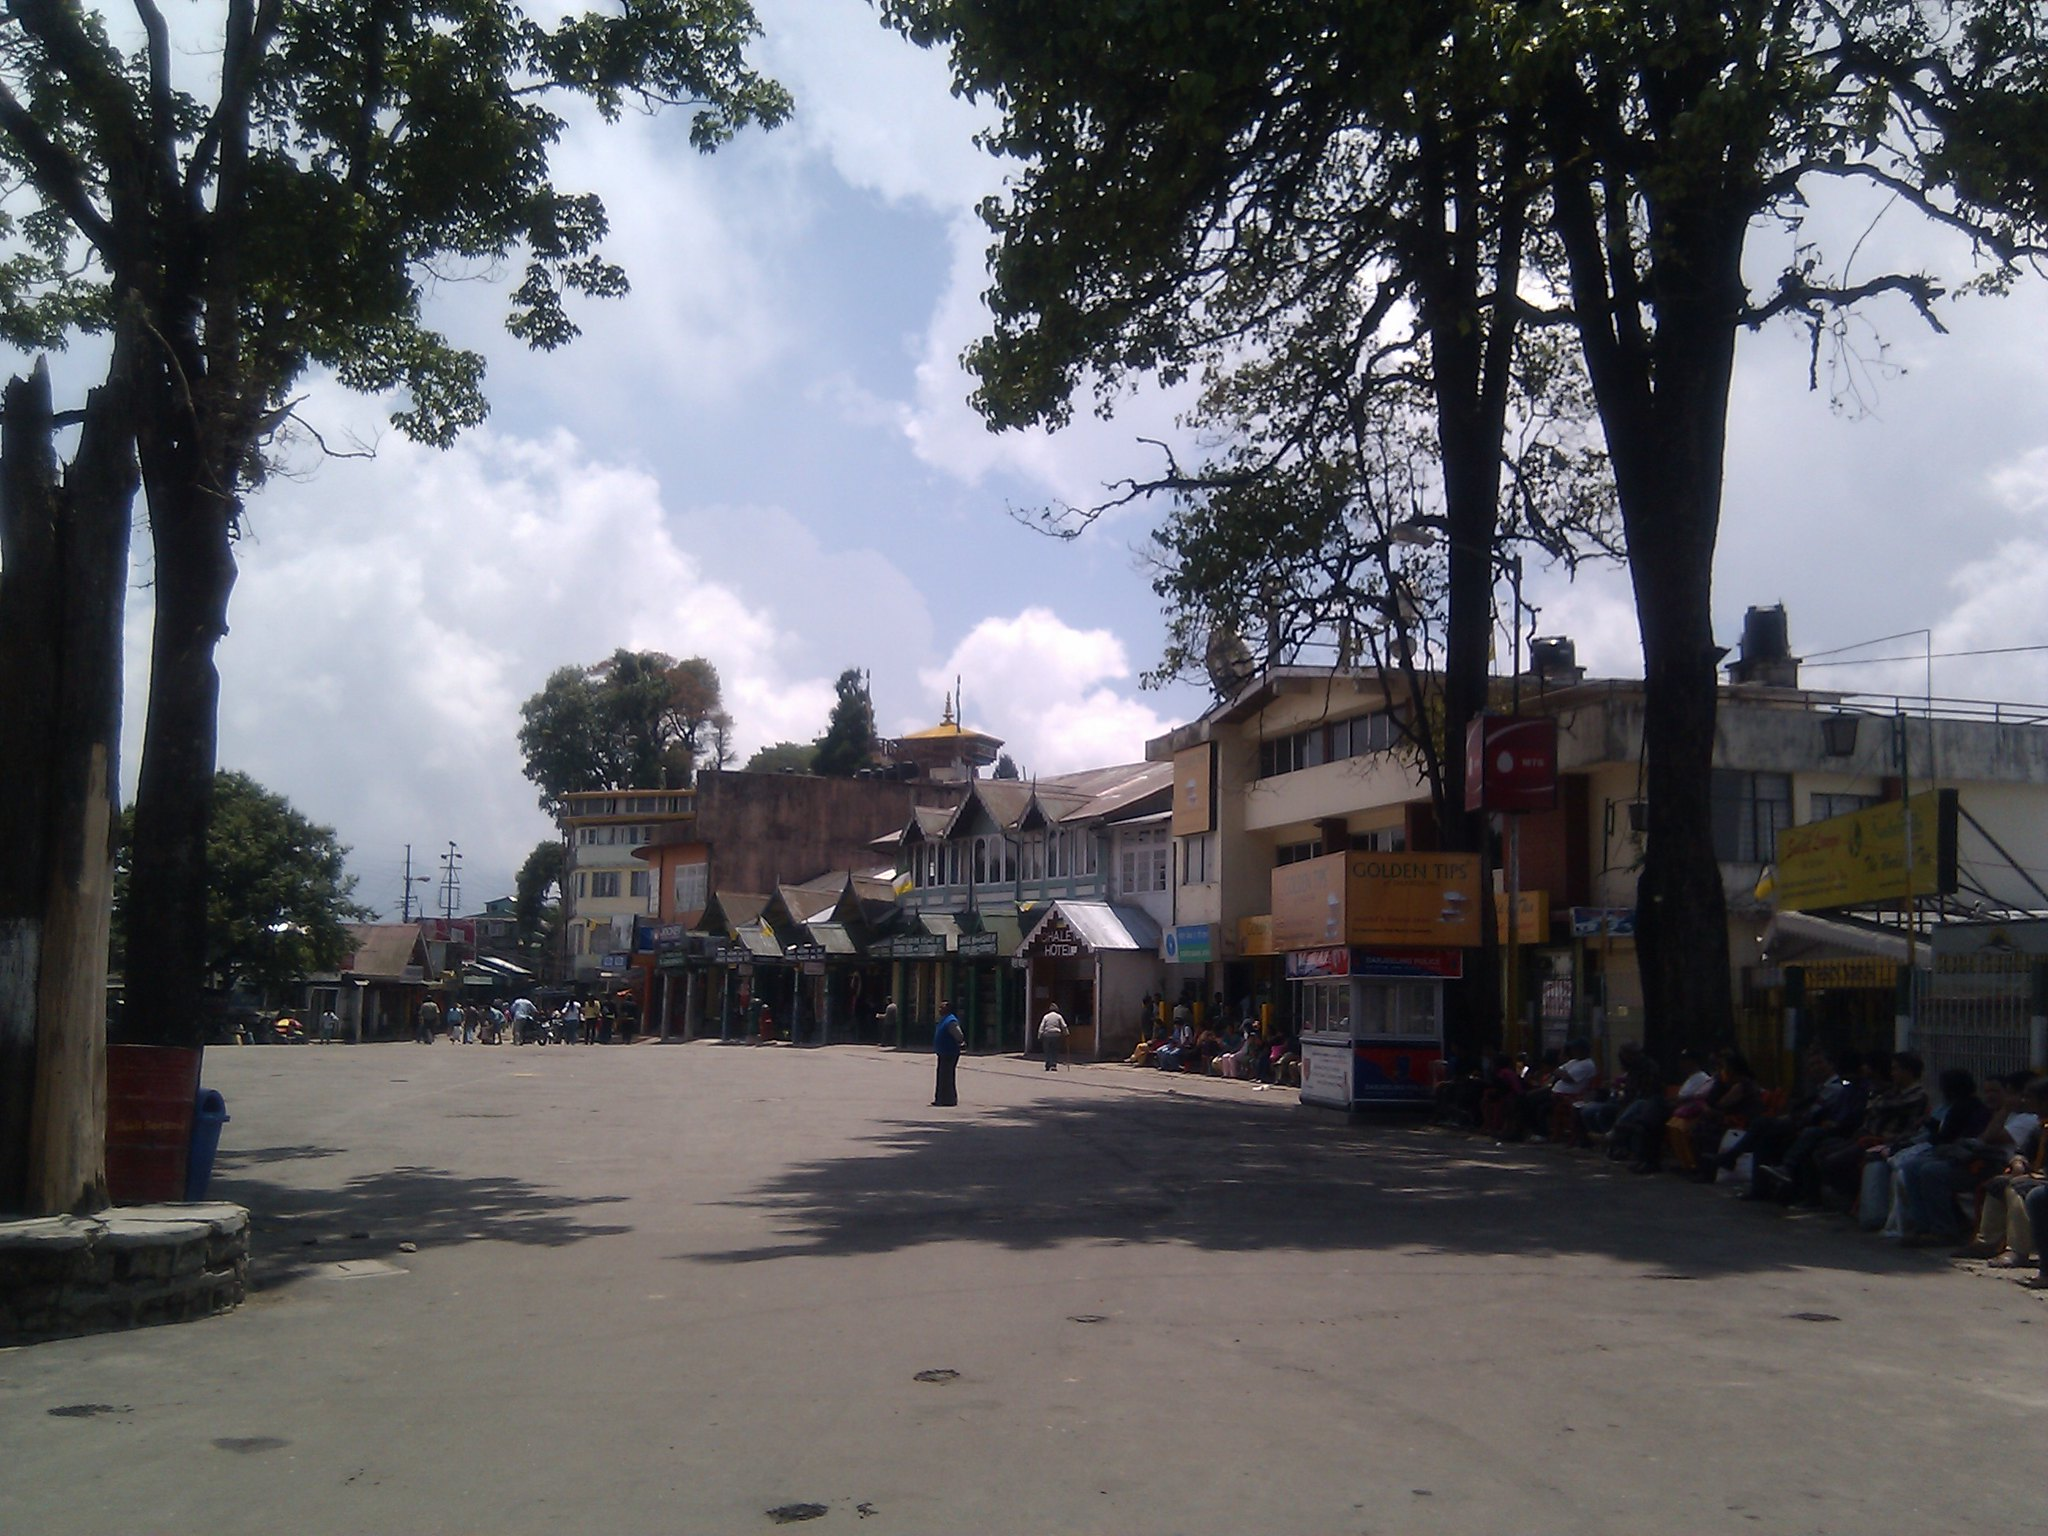 The Mall Road - Best Shopping Destination in Darjeeling to Self-Indulge